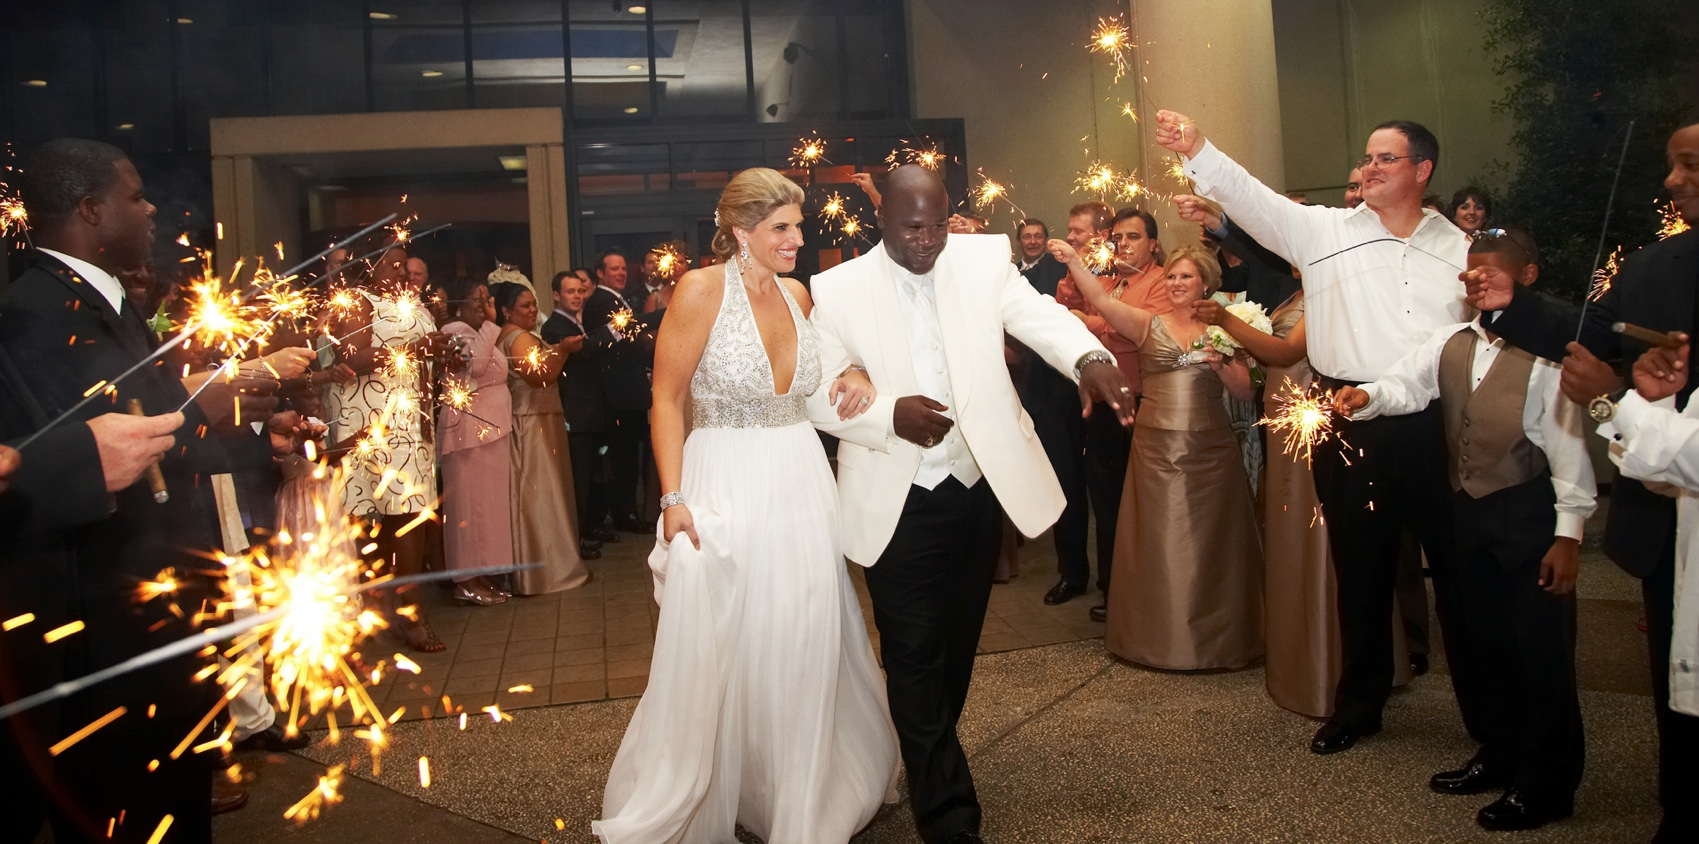 Bride and groom walk out of reception with sparkler exit